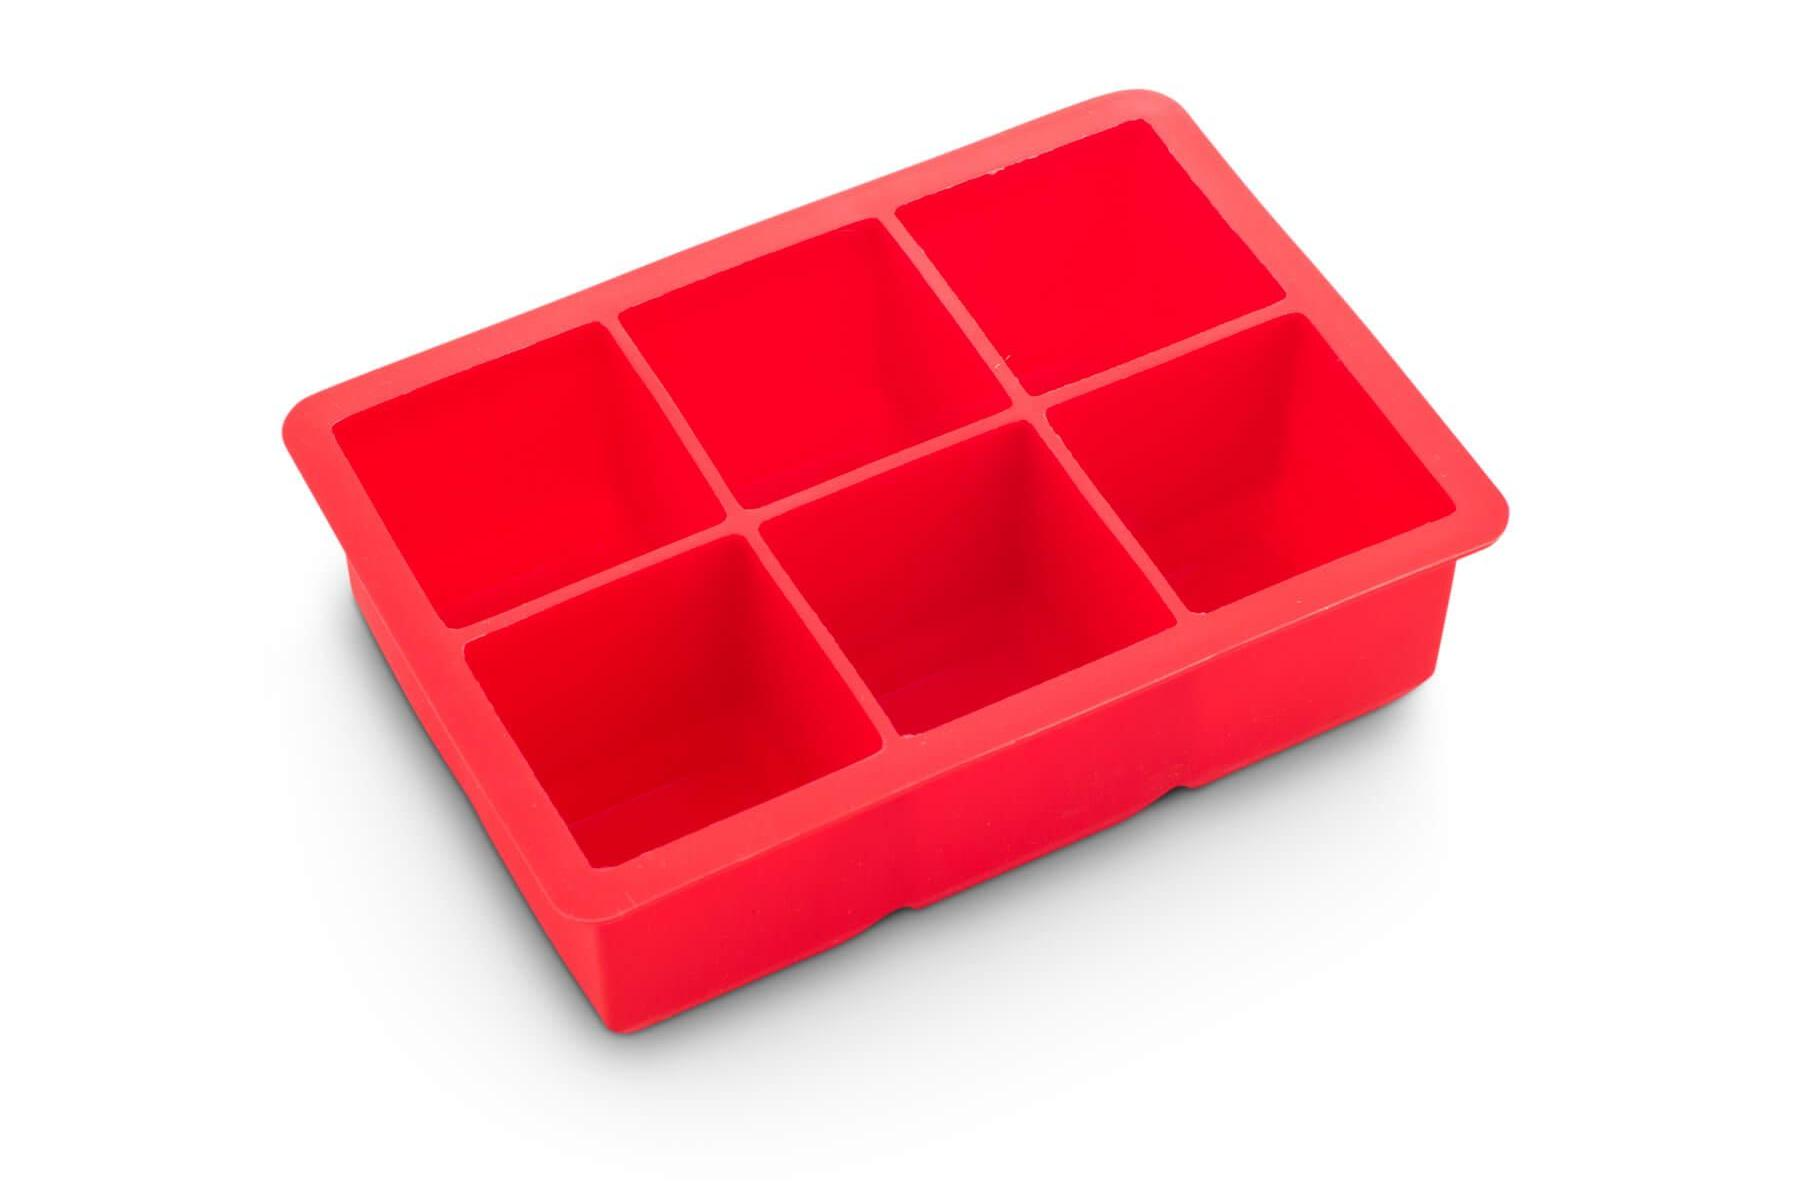 Large Ice Mould Tray - 2 in king cubes 6 Section Red Silicone